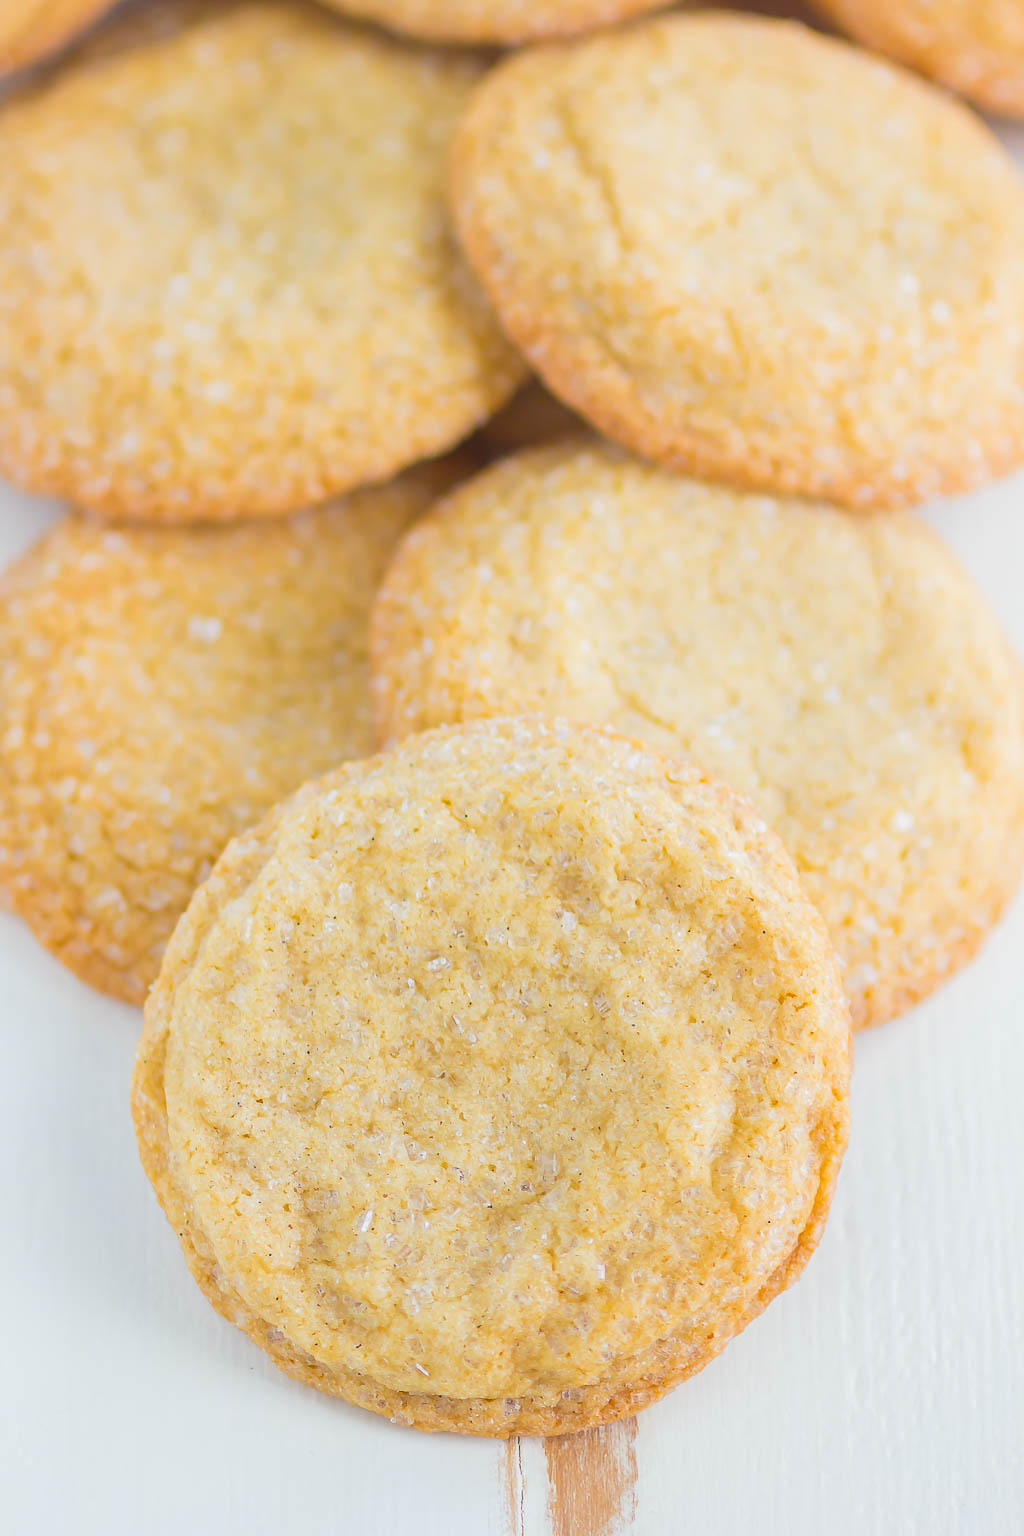 Overhead view of a pile of chewy brown sugar cookies.